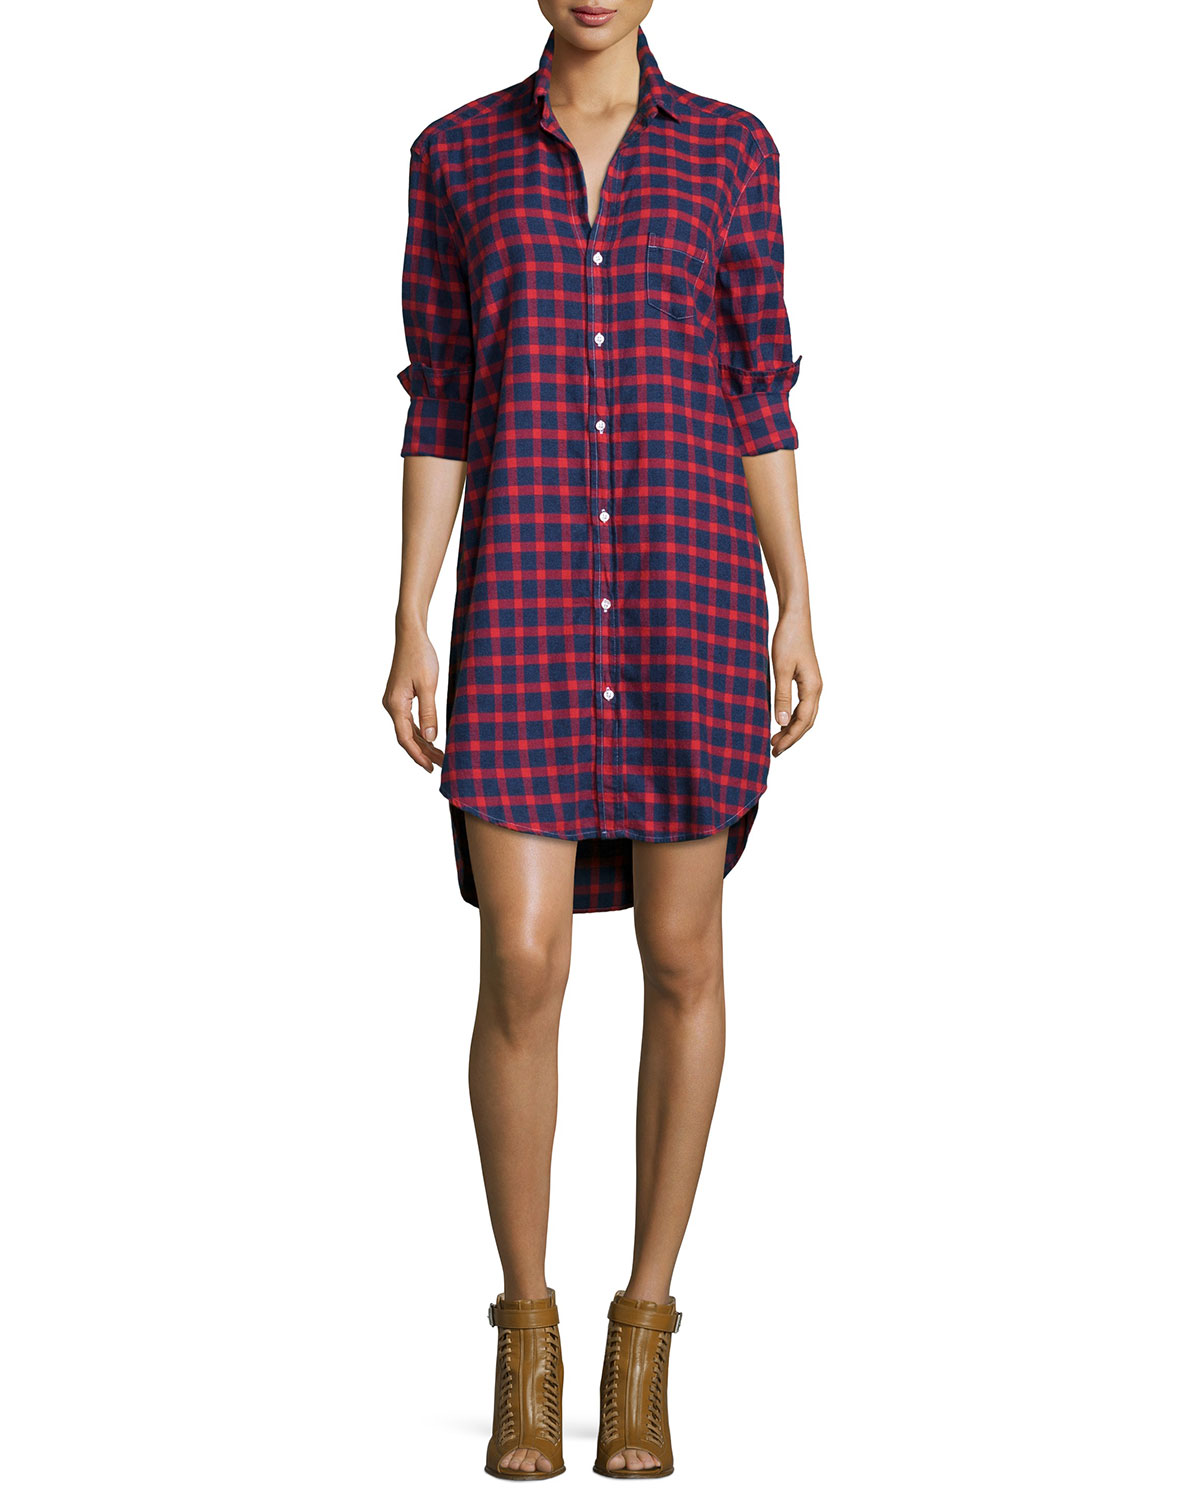 Mary Plaid Cotton Shirtdress, Red/Blue, Size: X-LARGE, Blue Pattern - Frank & Eileen